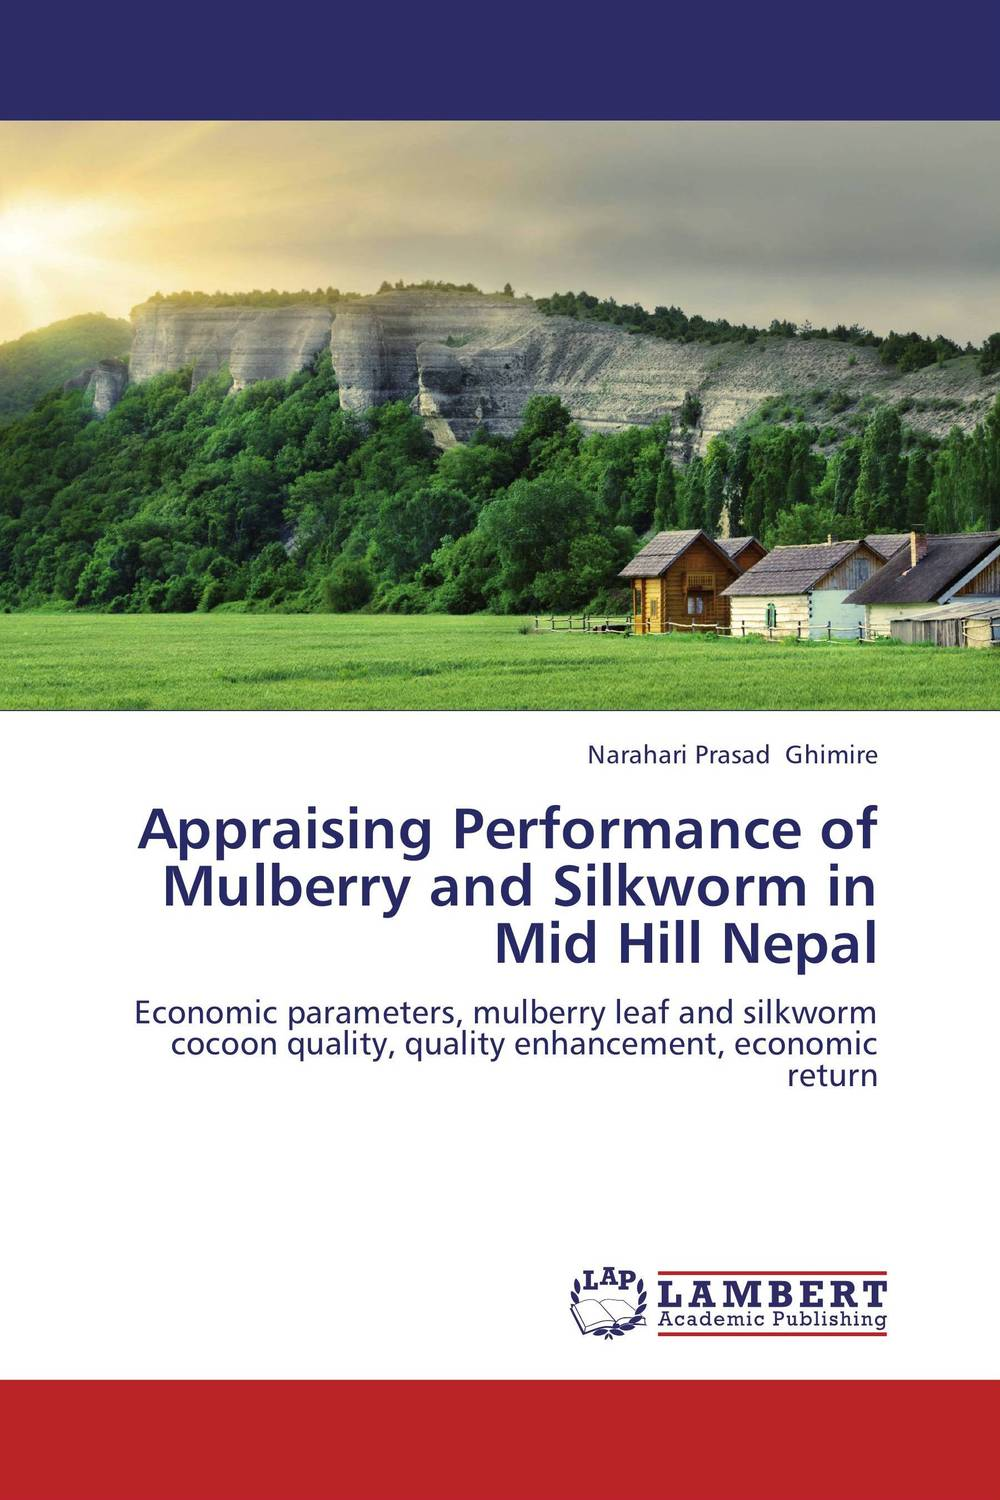 Appraising Performance of Mulberry and Silkworm in Mid Hill Nepal early diagnosis and genetic map for silkworm viruses bombyx mori l